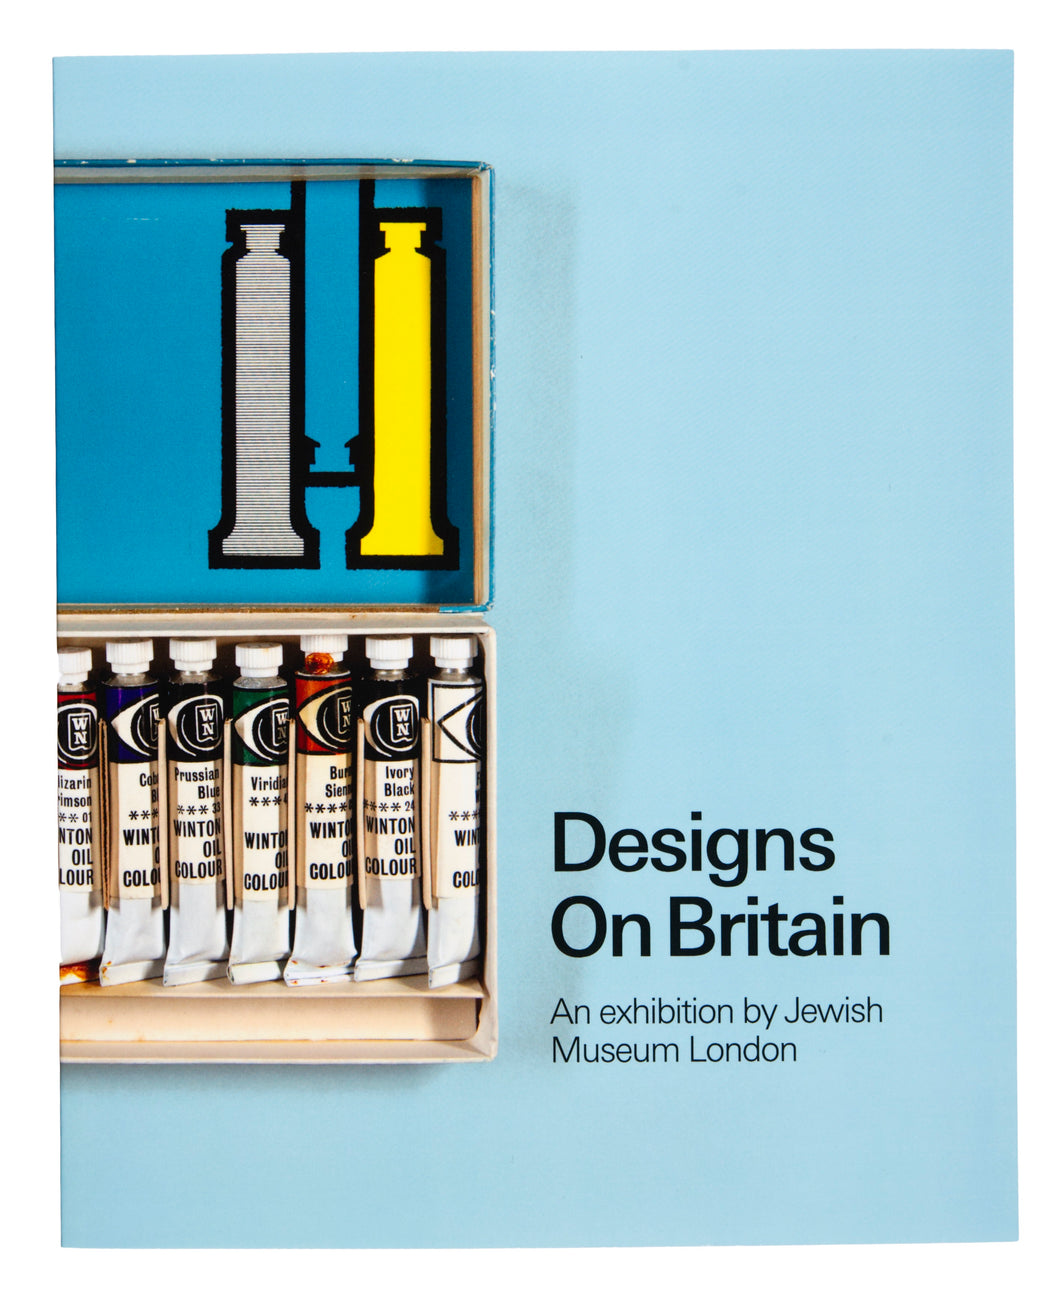 Designs on Britain Catalogue